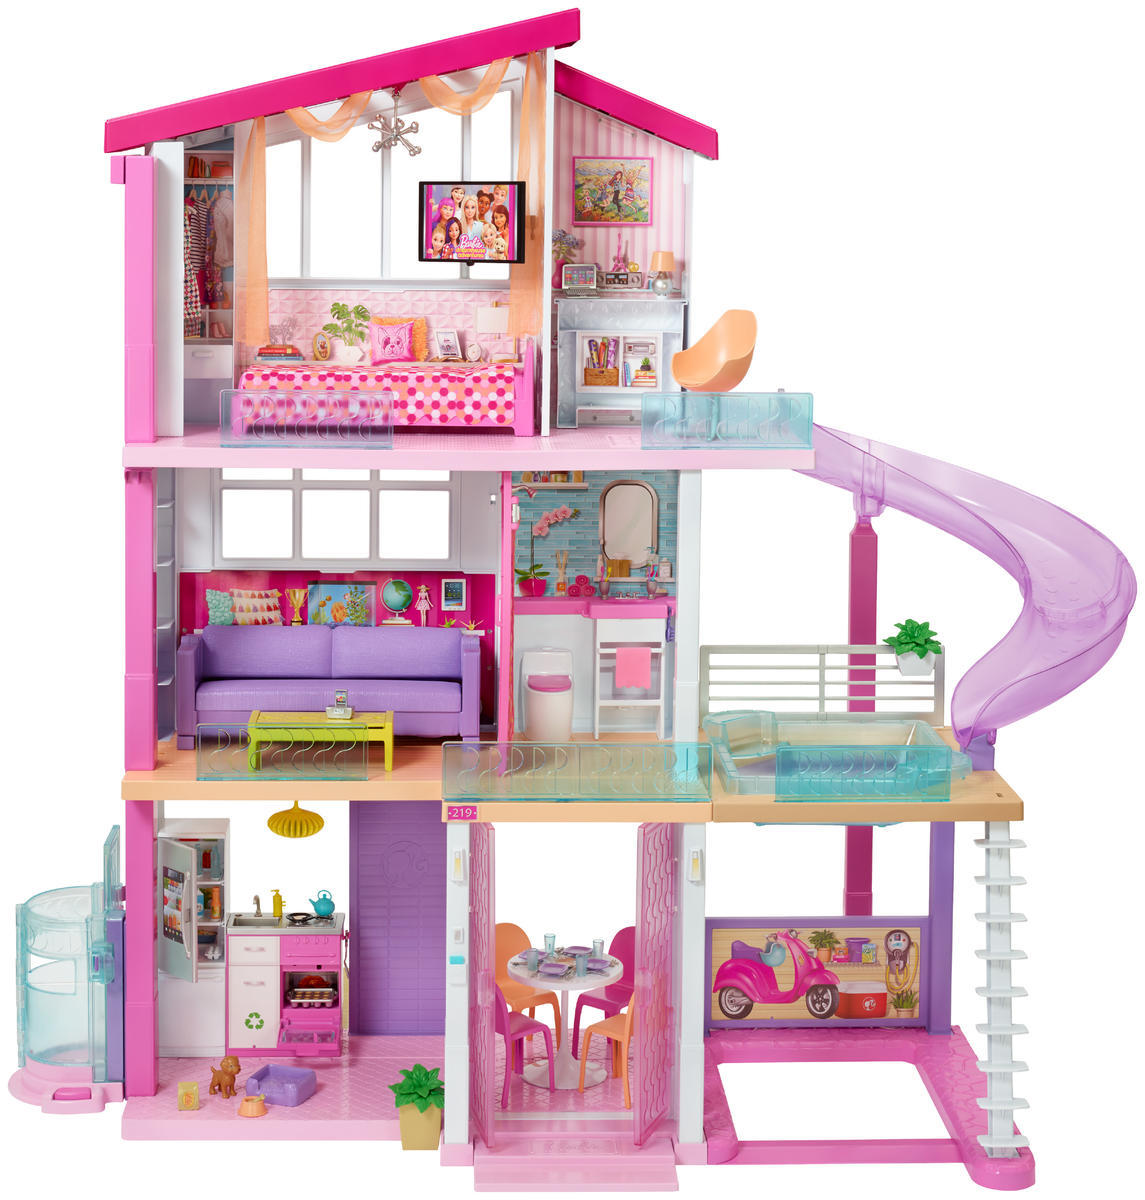 The 2018 Barbie Dreamhouse Would Be a MillionDollar